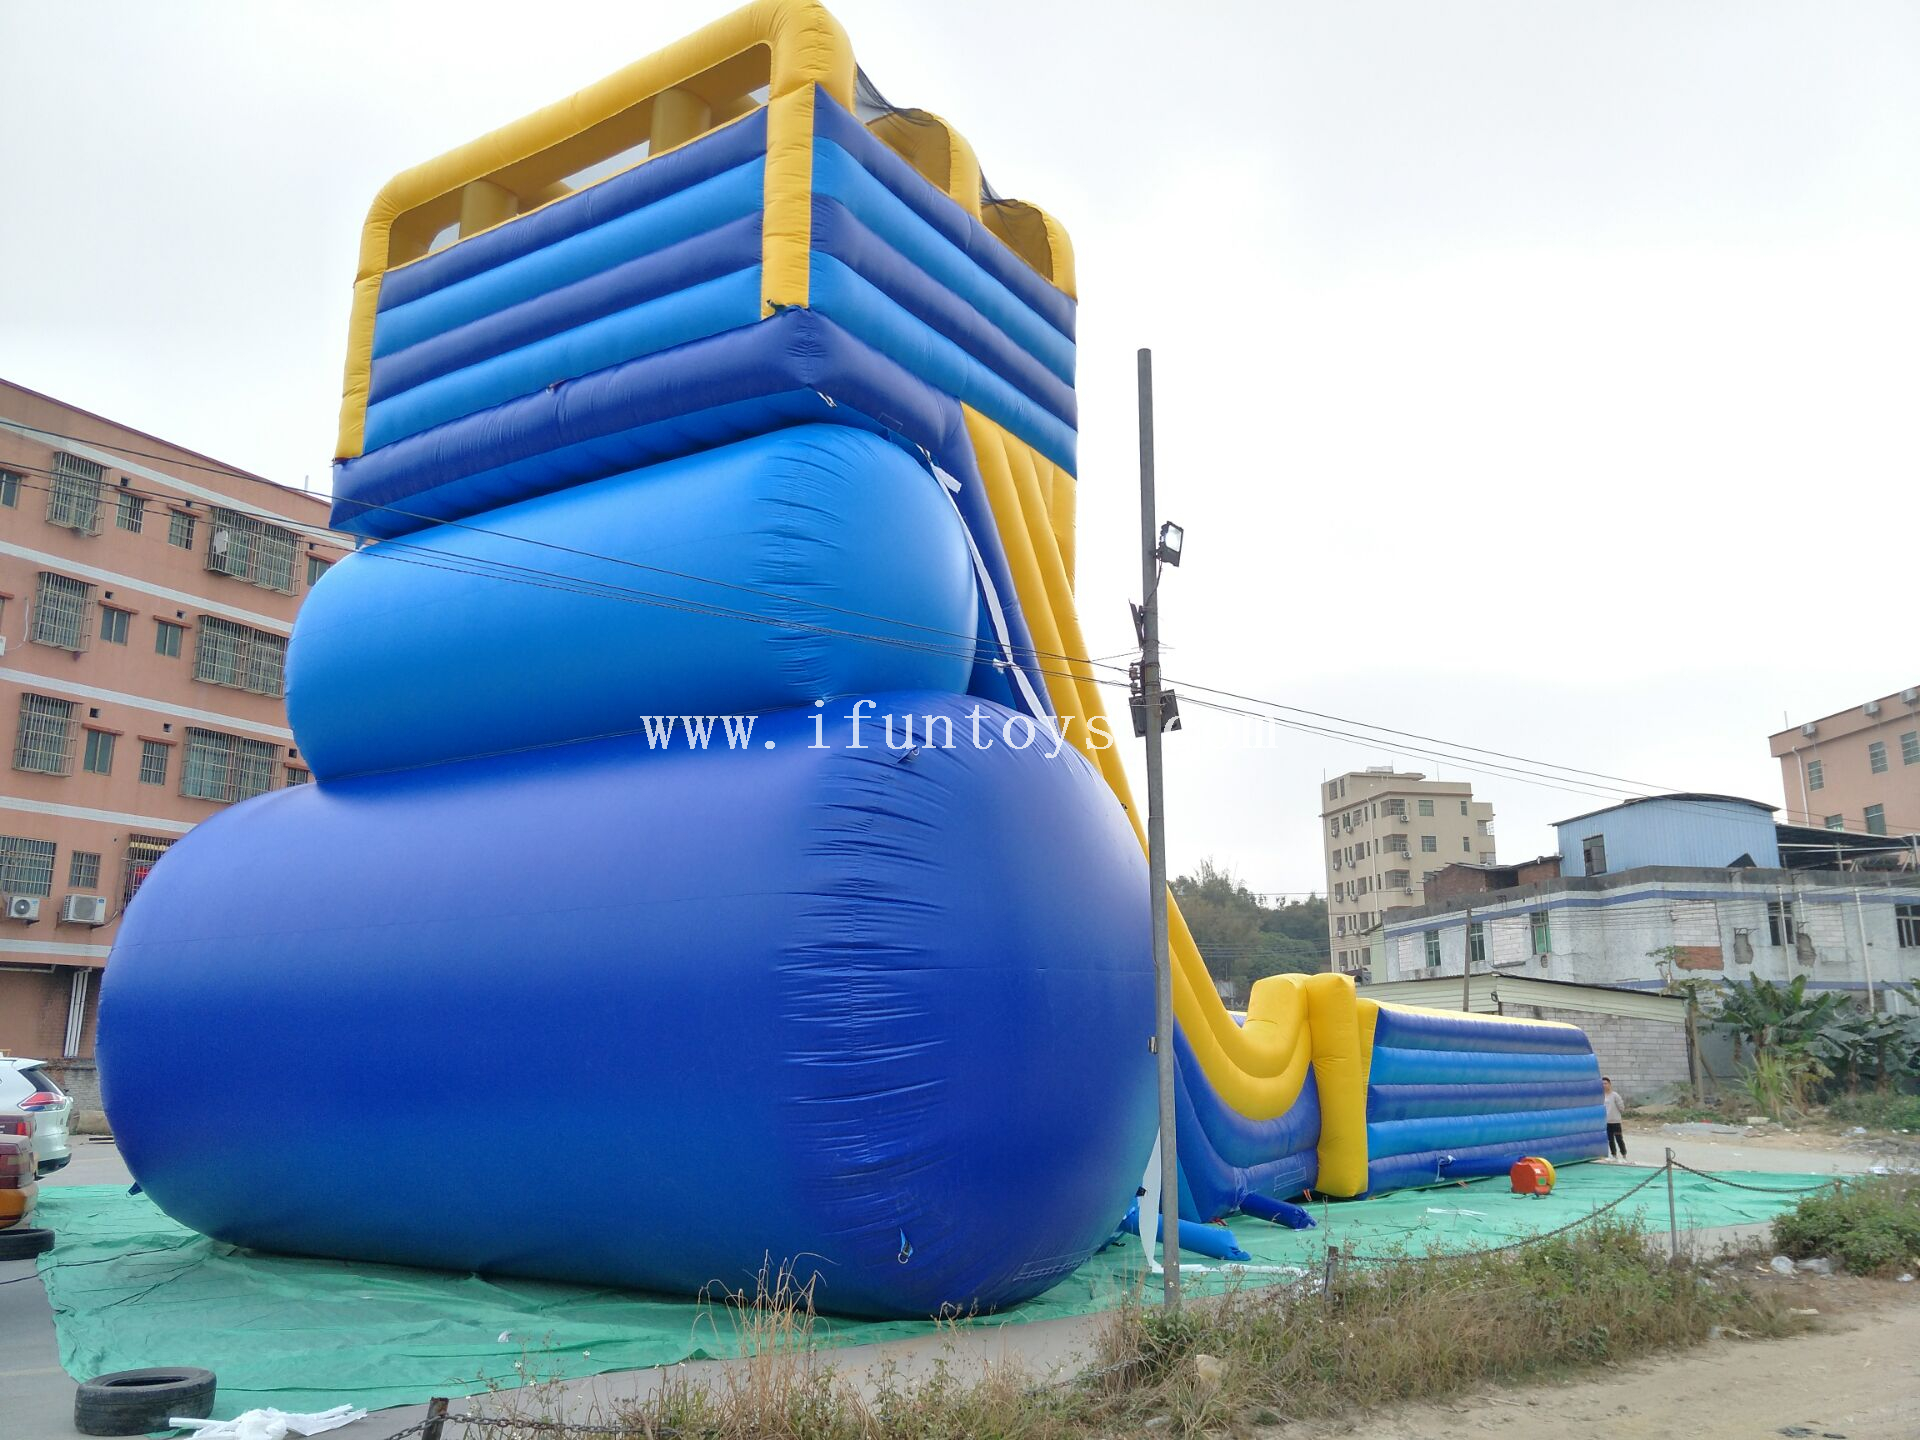 Amazing double lane free fall adult Inflatable Skyscraper Slide/ Giant Inflatable dry Slide /inflatable drop jumping slide for kids and adults